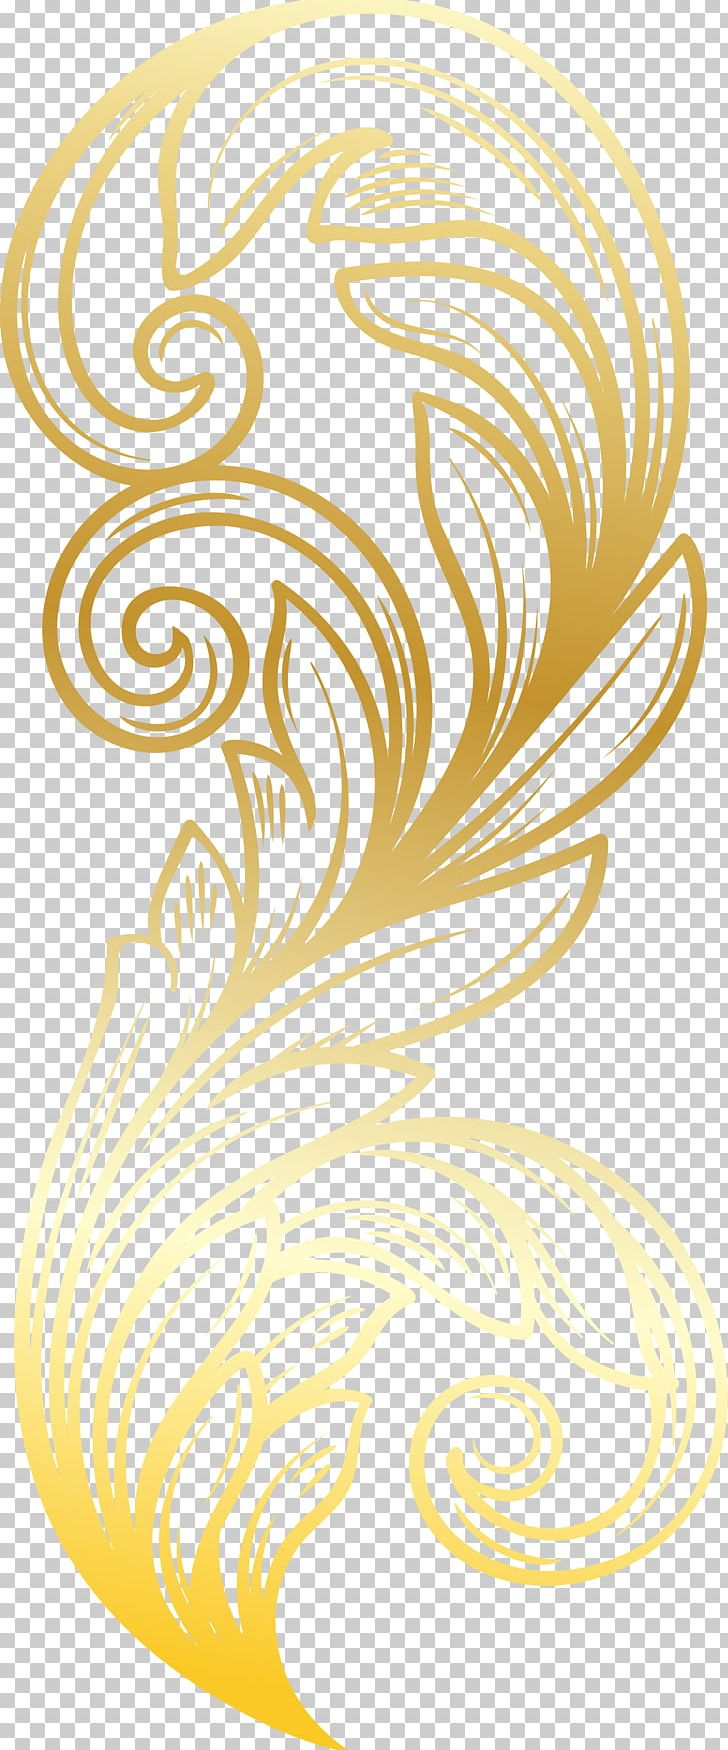 Feather Gold PNG, Clipart, Animals, Atmosphere, Botany, Circle, Decorative Free PNG Download